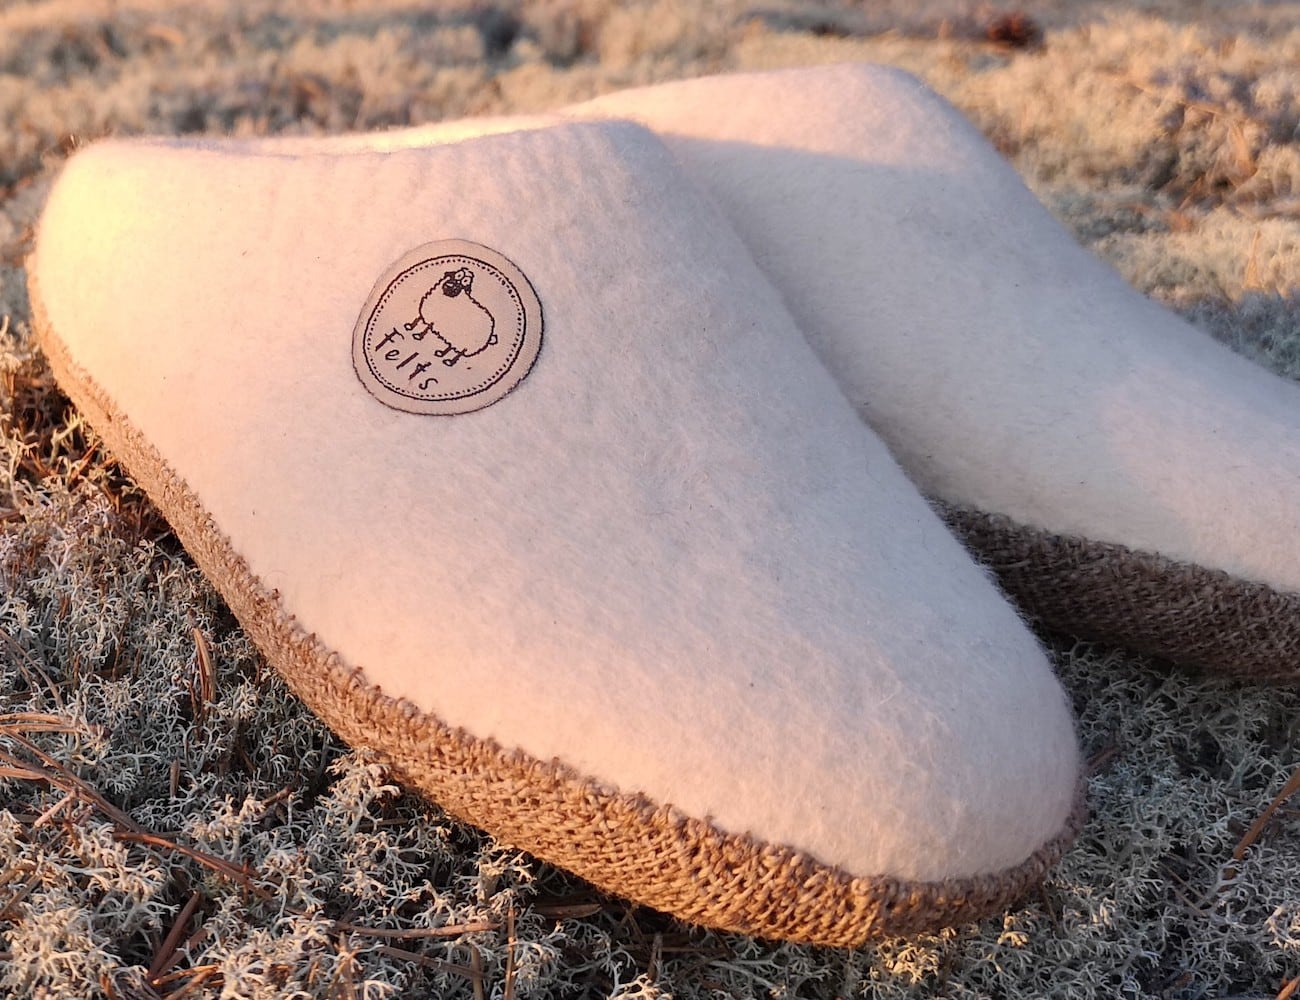 Felts Merino Wool Health Shoes